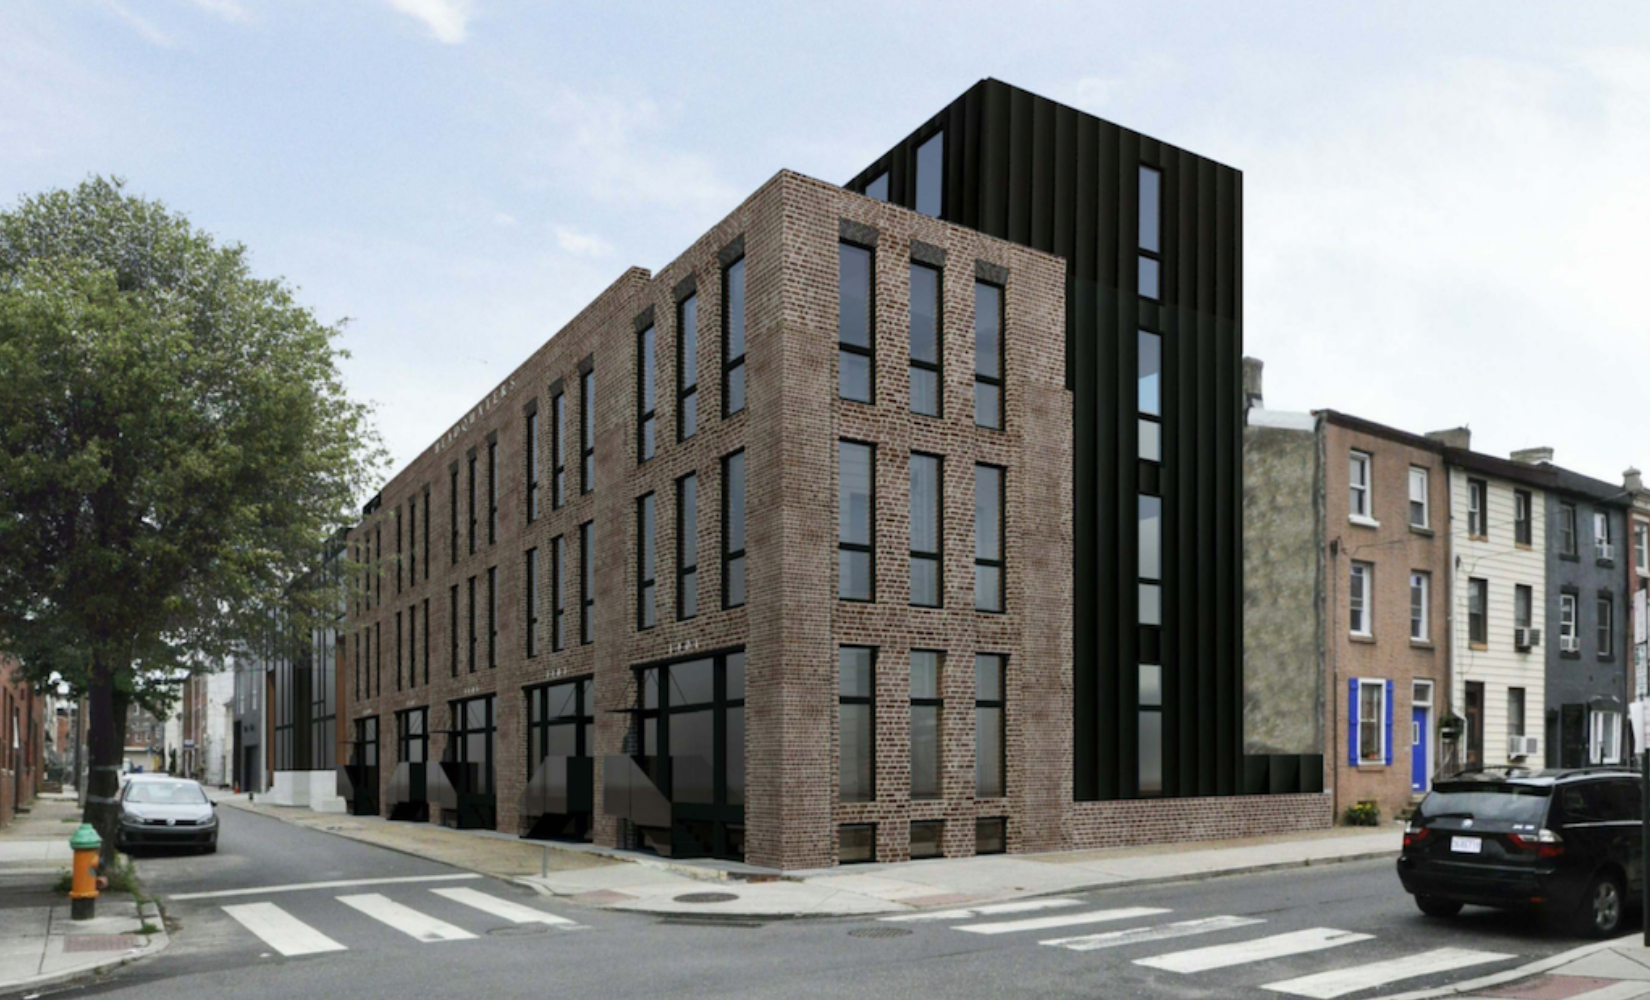 Rendering of Oxford Row. Credit: Ambit Architecture.